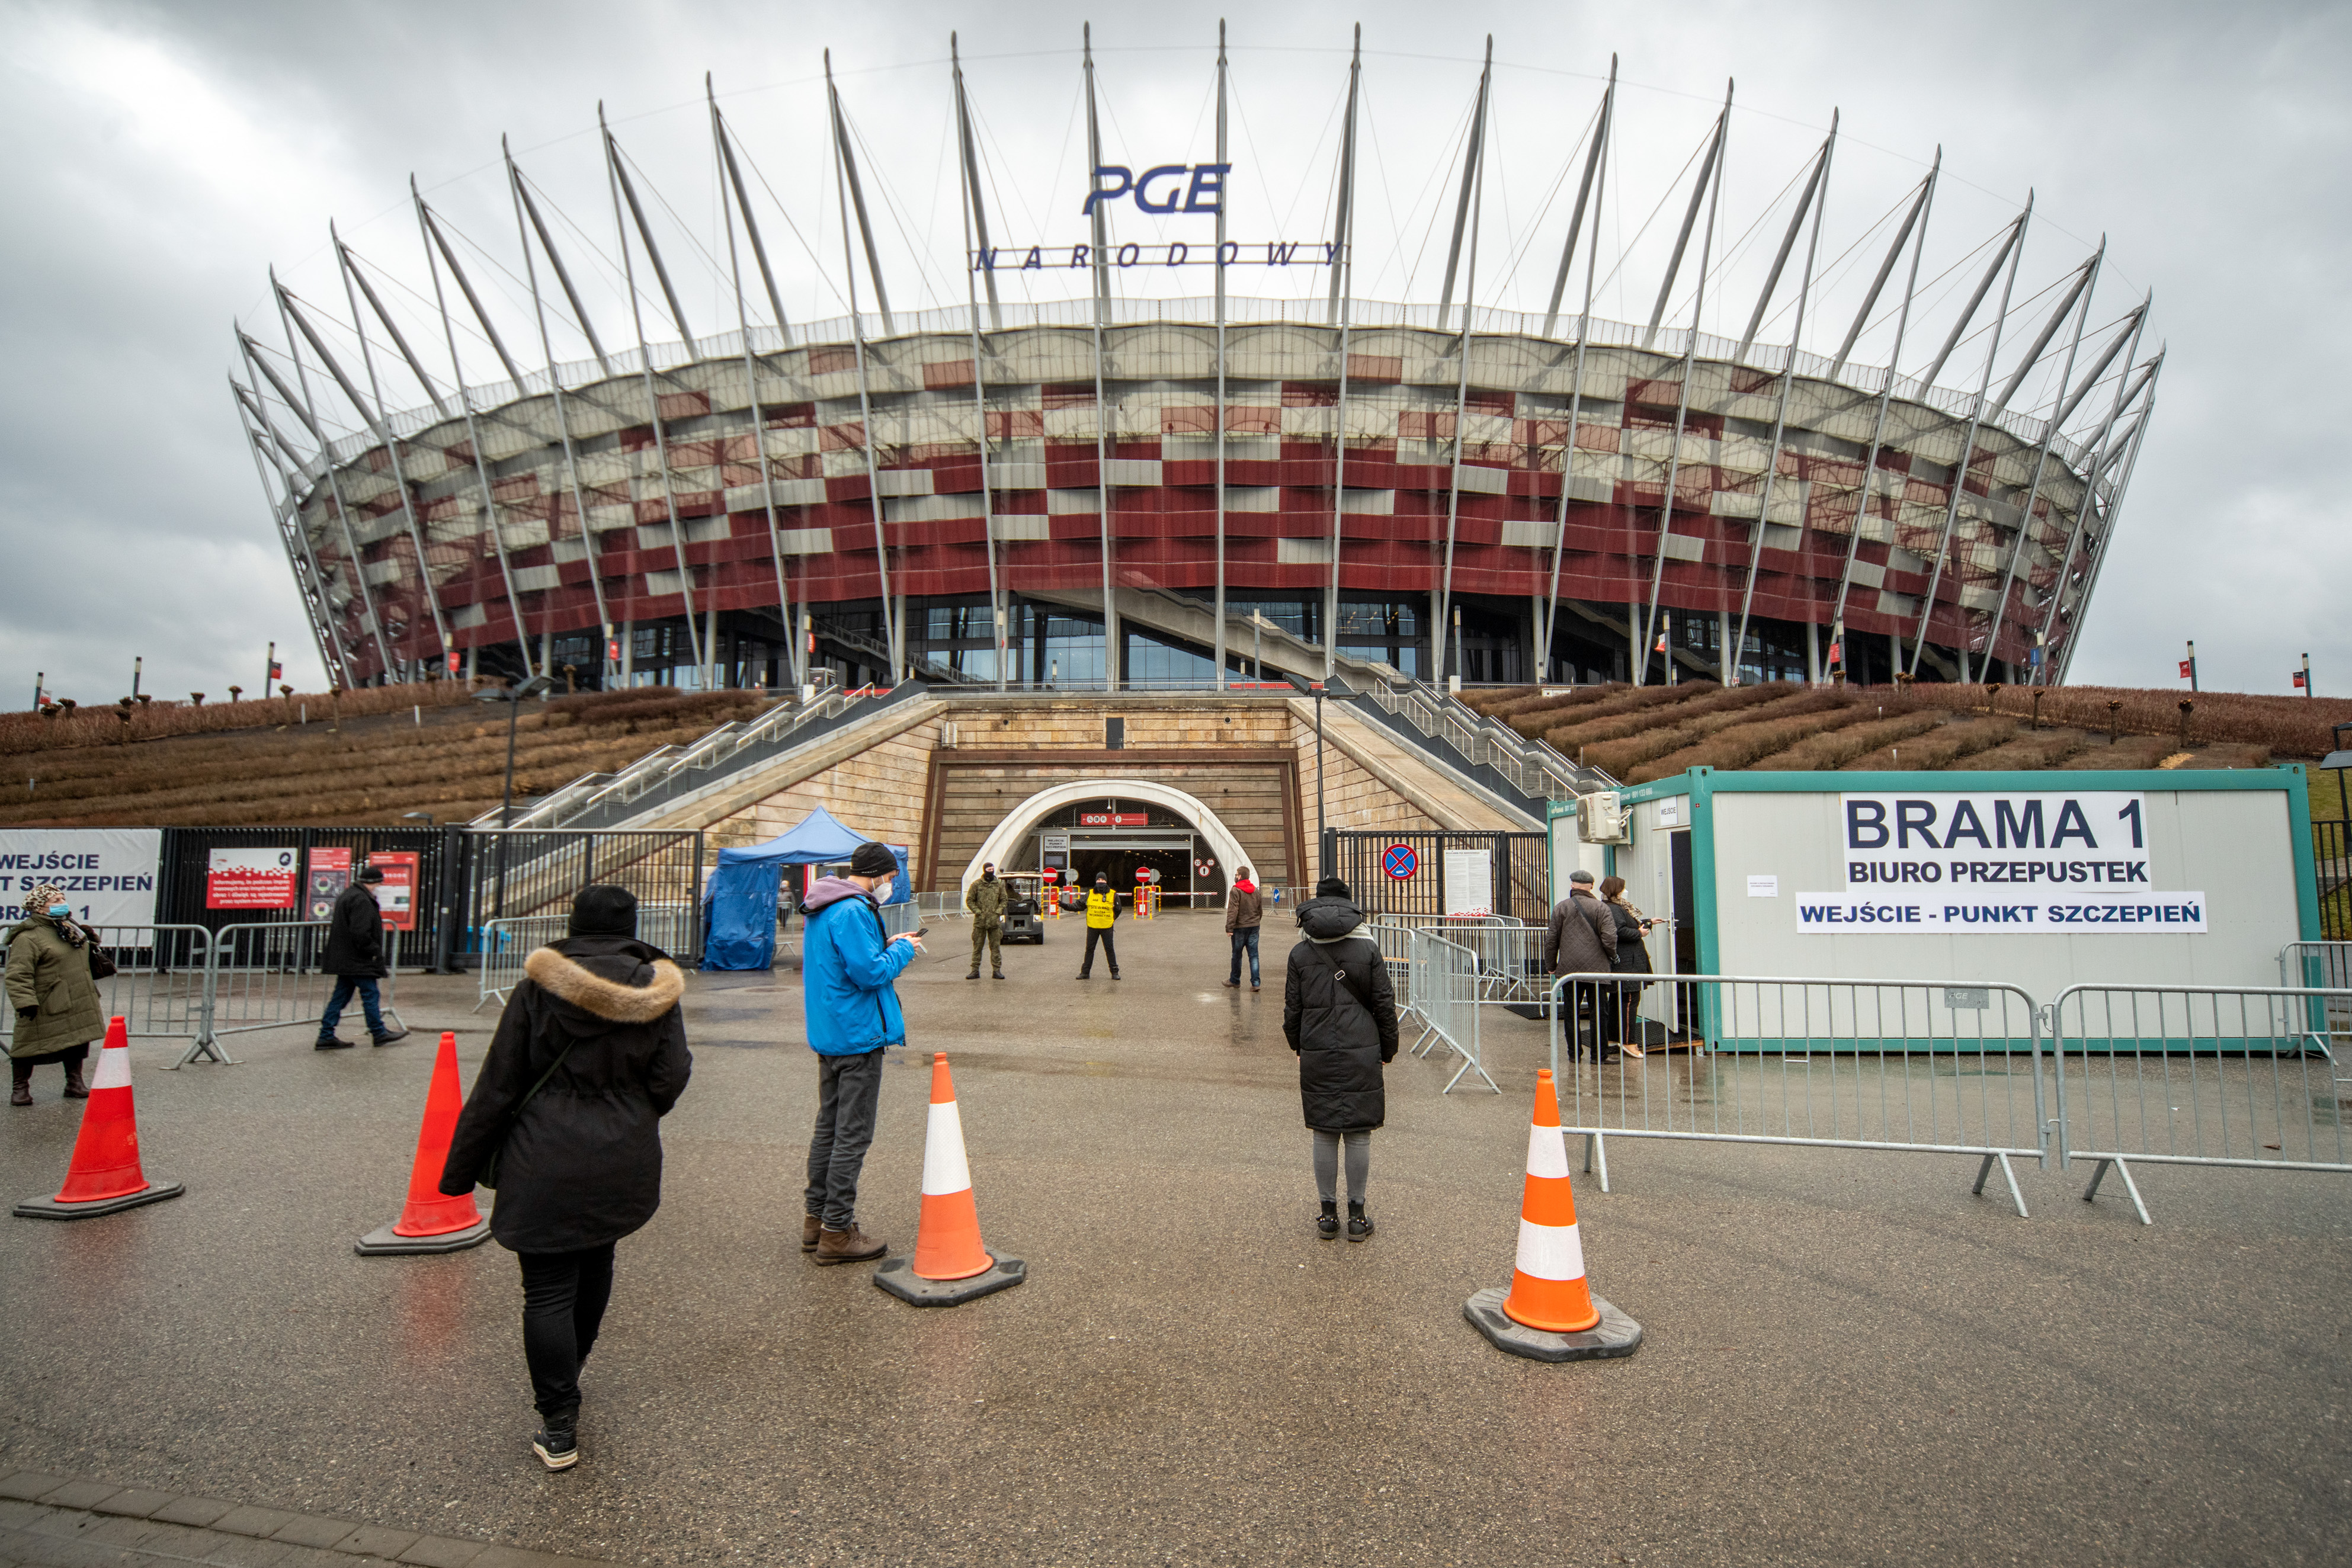 Visitors at an entrance to a COVID-19 vaccination center in Poland's National Stadium in Warszawa, Poland.